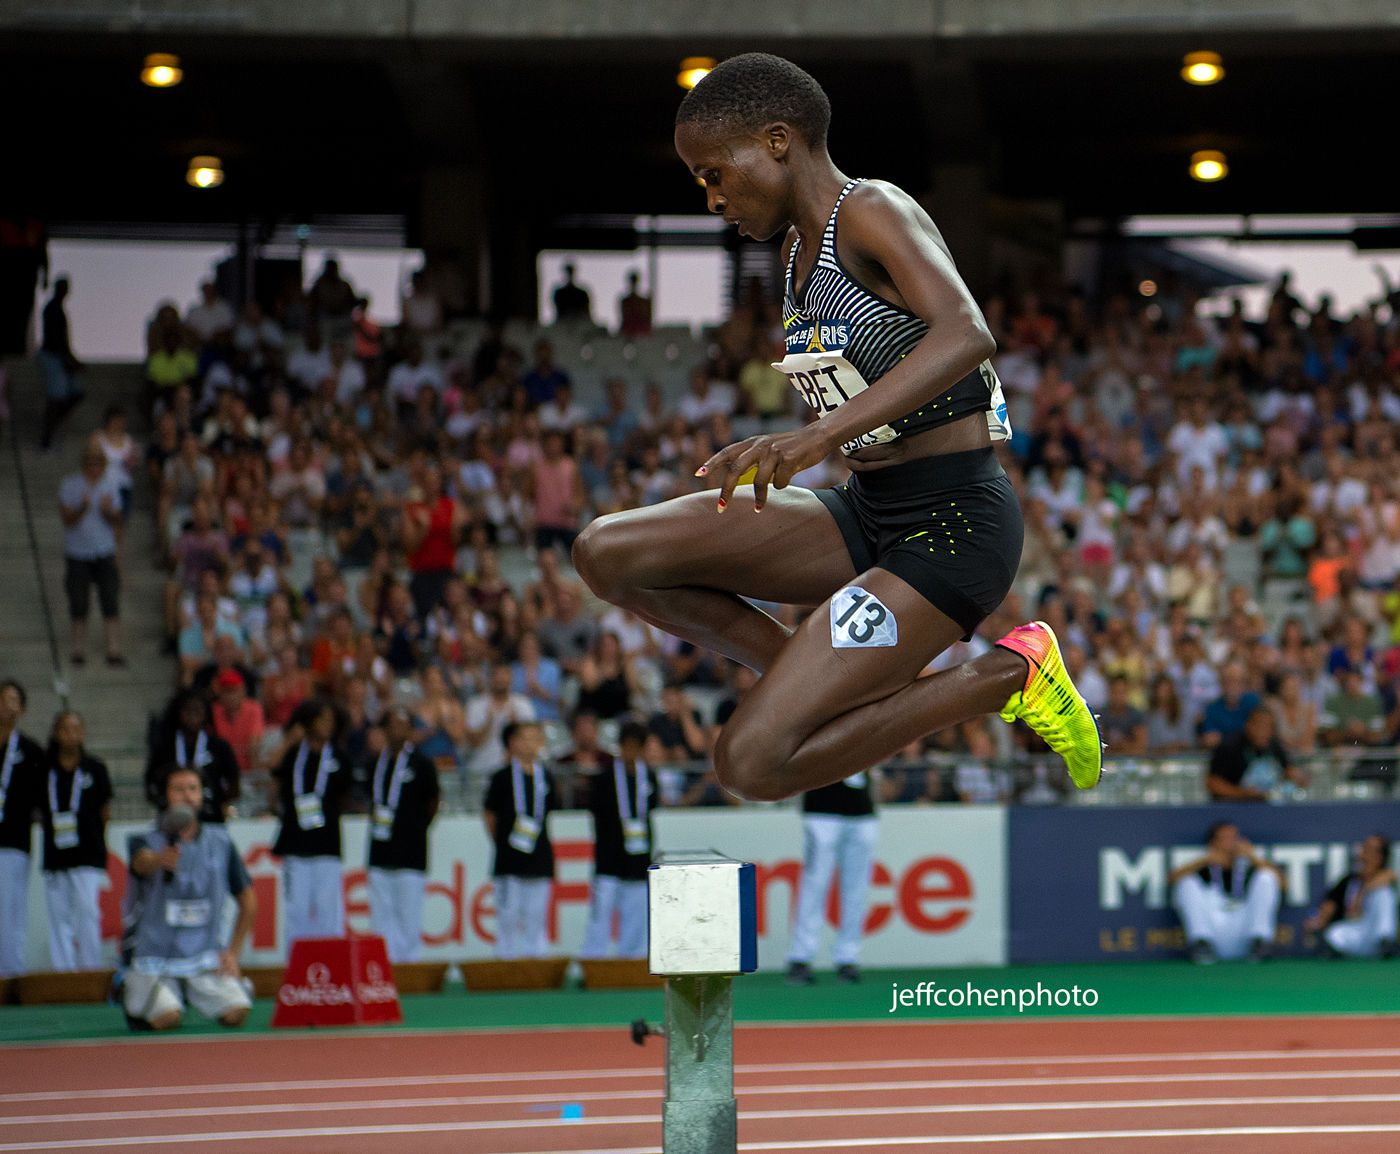 1r2016_meeting_de_paris_ruth_jebet_wr_steeple_jump_jeff_cohen_photo_1049_web.jpg